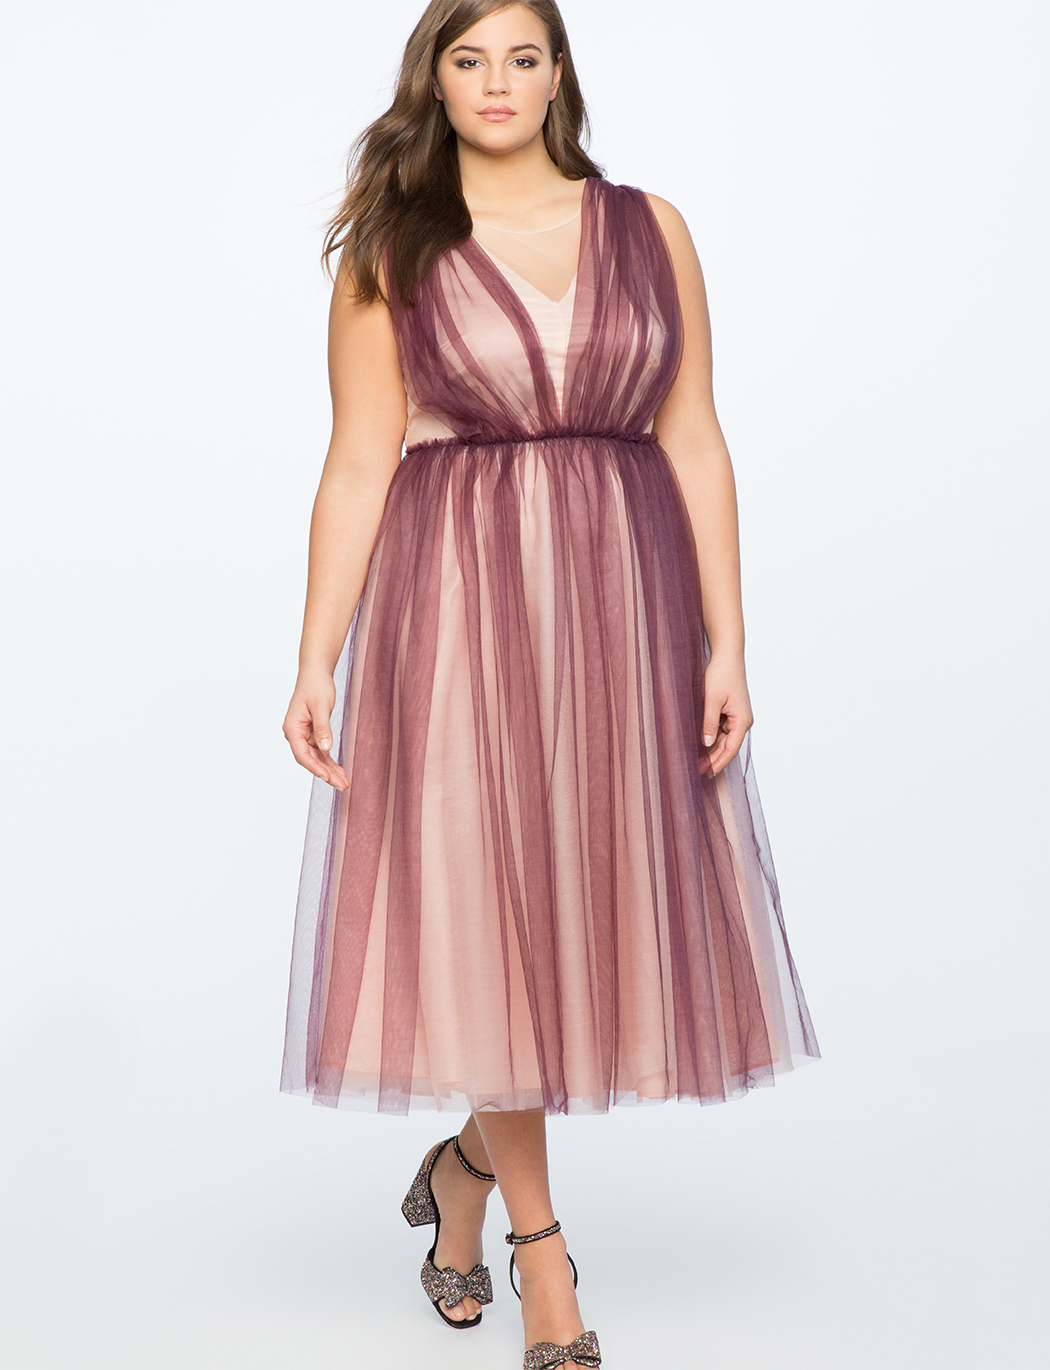 Tulle Ball Gown | Women\'s Plus Size Dresses | ELOQUII